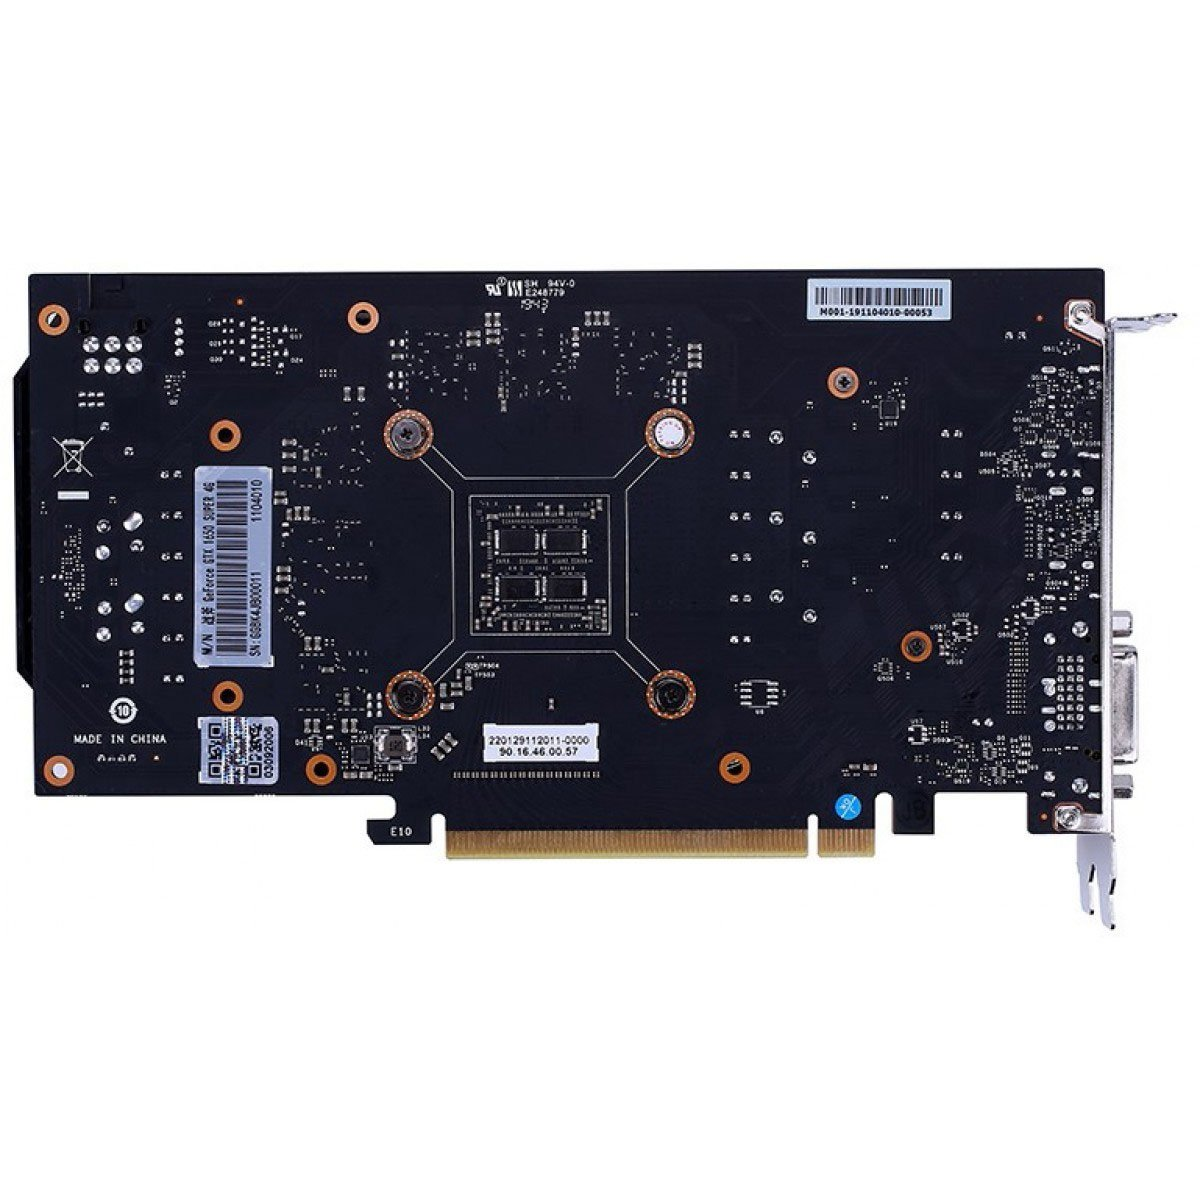 placa de video 4gb gtx1650 colorful super dual gf nvidia 1725mhz hdmi dvi disp gddr6 51081 2000 203449